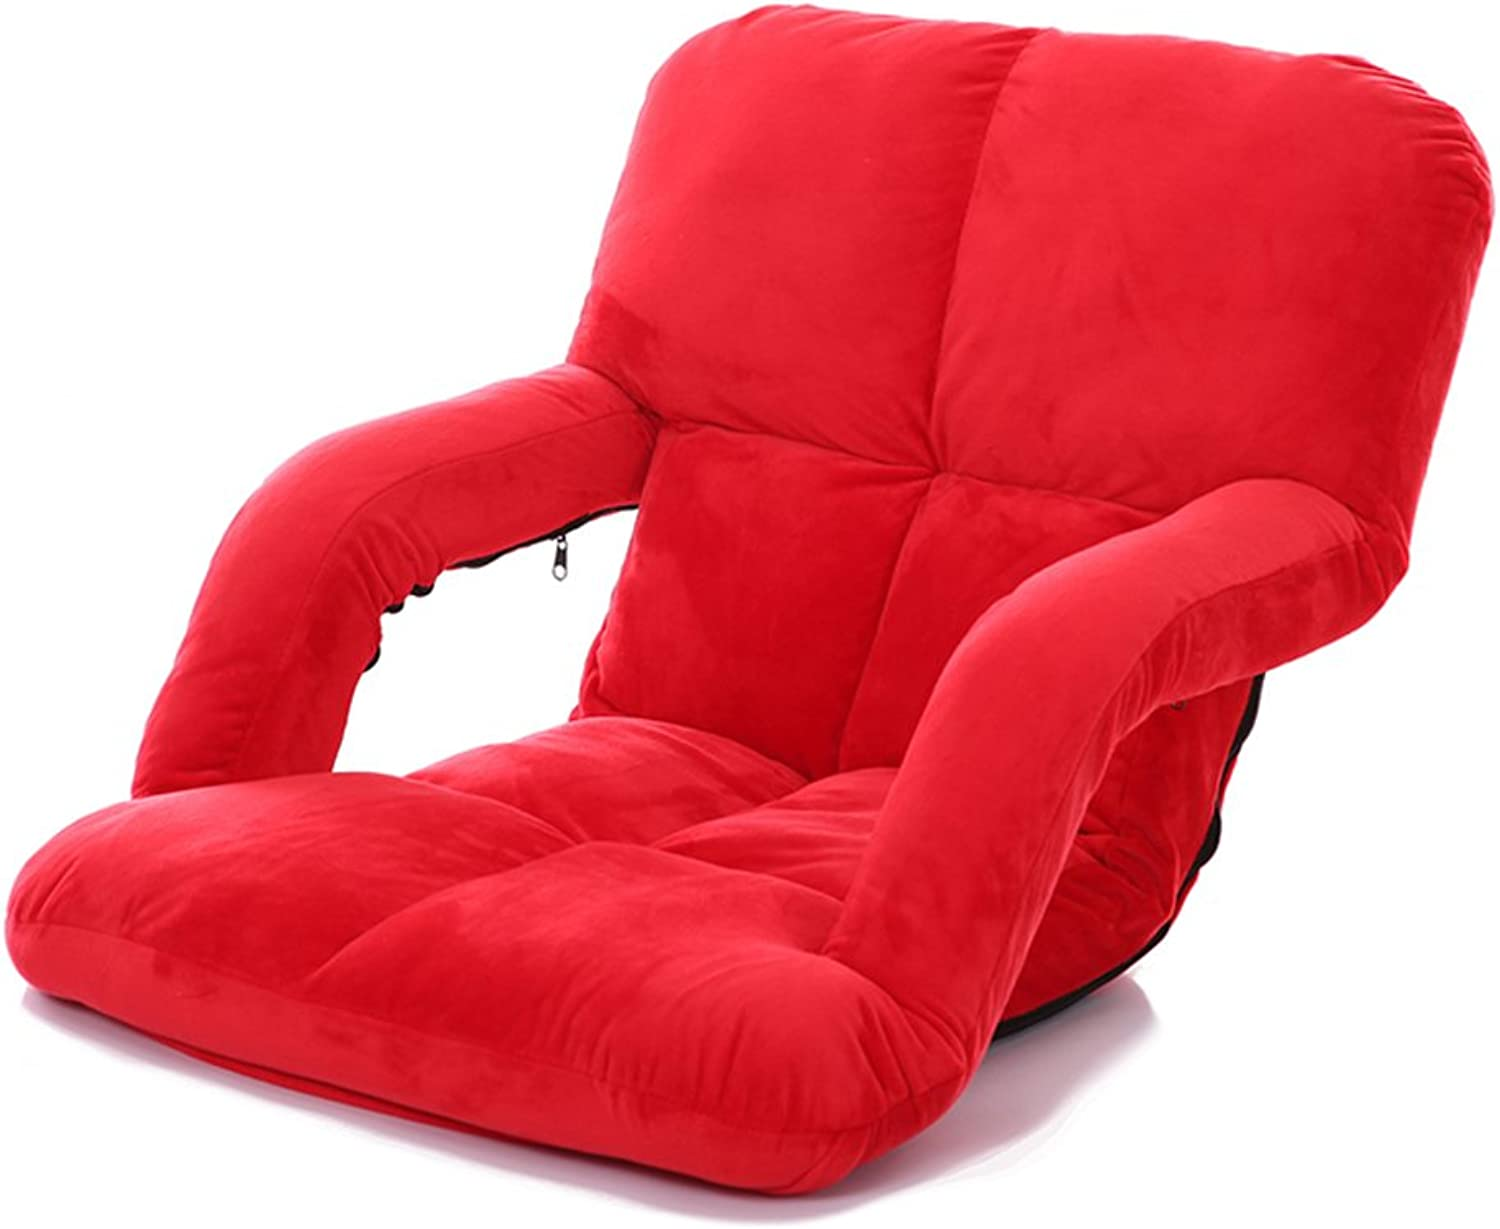 MAHZONG Recliners Folding Single Small Sofa, Bed Computer Chair Floor Balcony Sofa (color   RED)